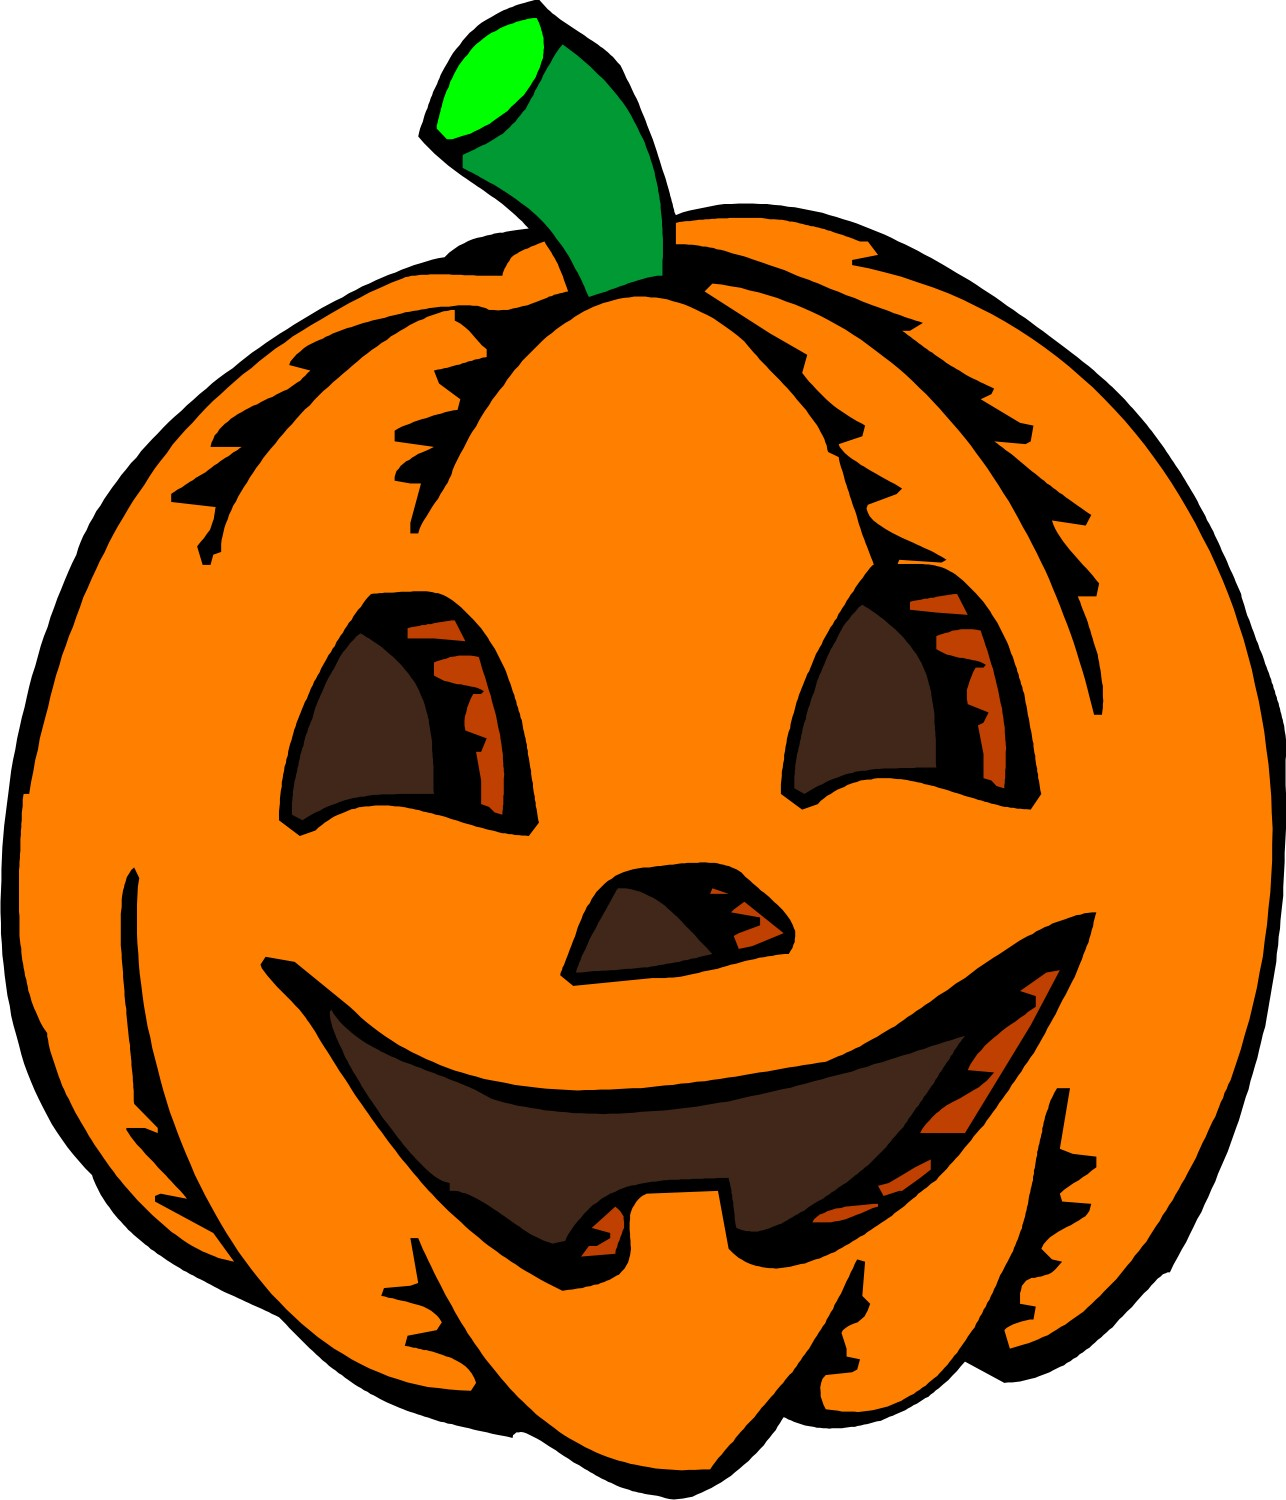 1286x1500 Cartoon Pumpkin Clipart 2187836